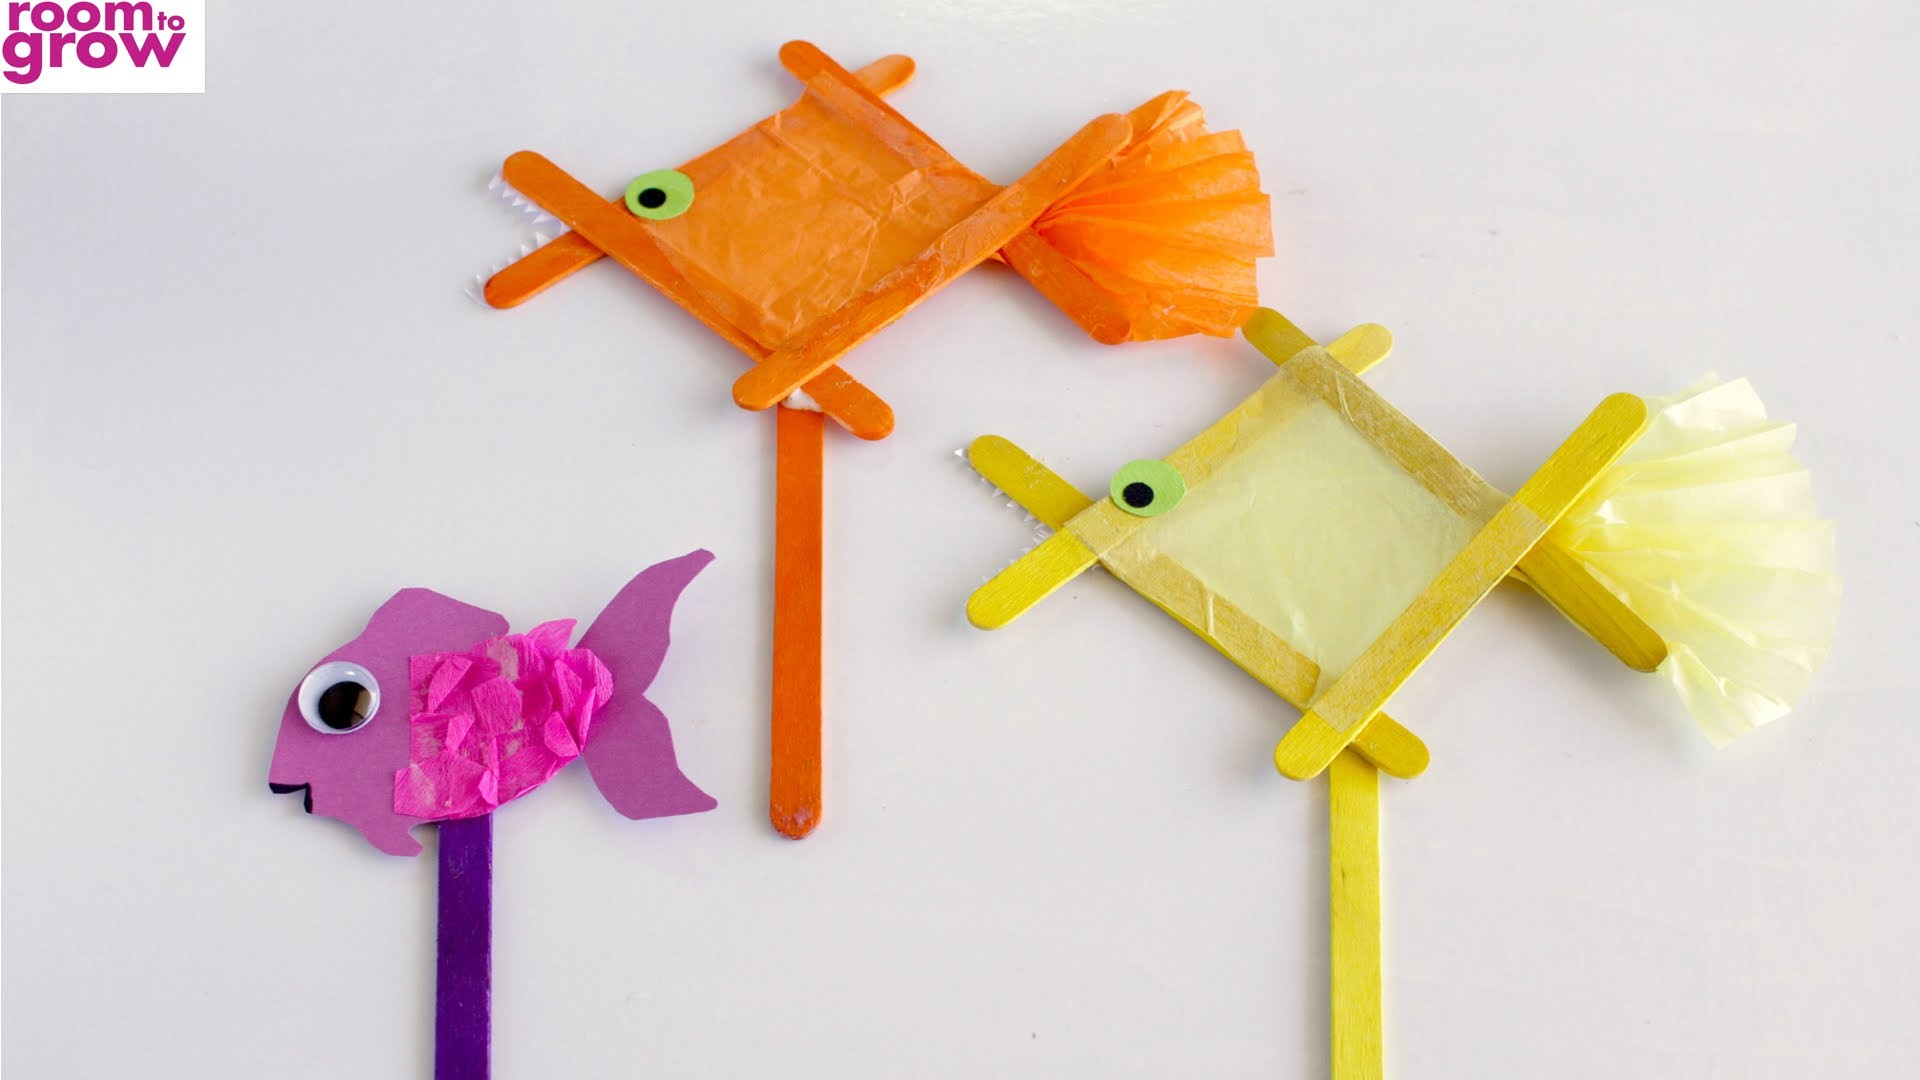 How to Make a Popsicle Stick Fish (Stop-Motion)